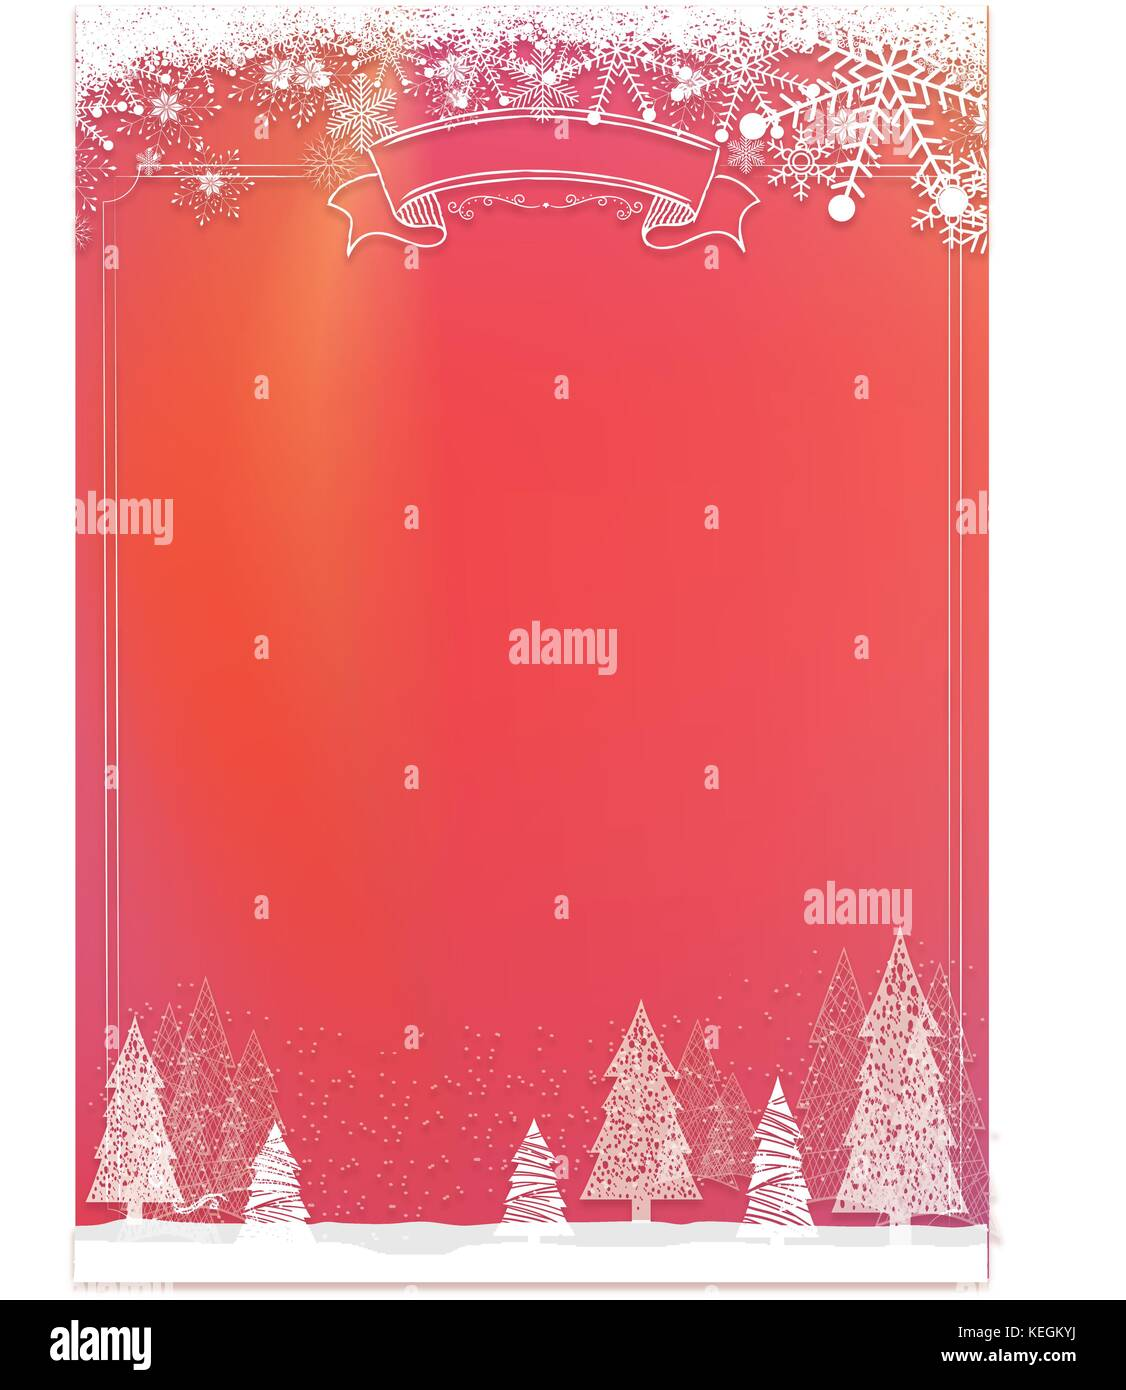 A3 Size Vertical Cafe Menu Classic Winter Christmas Red Background With Snowflake And Xmas Tree Border